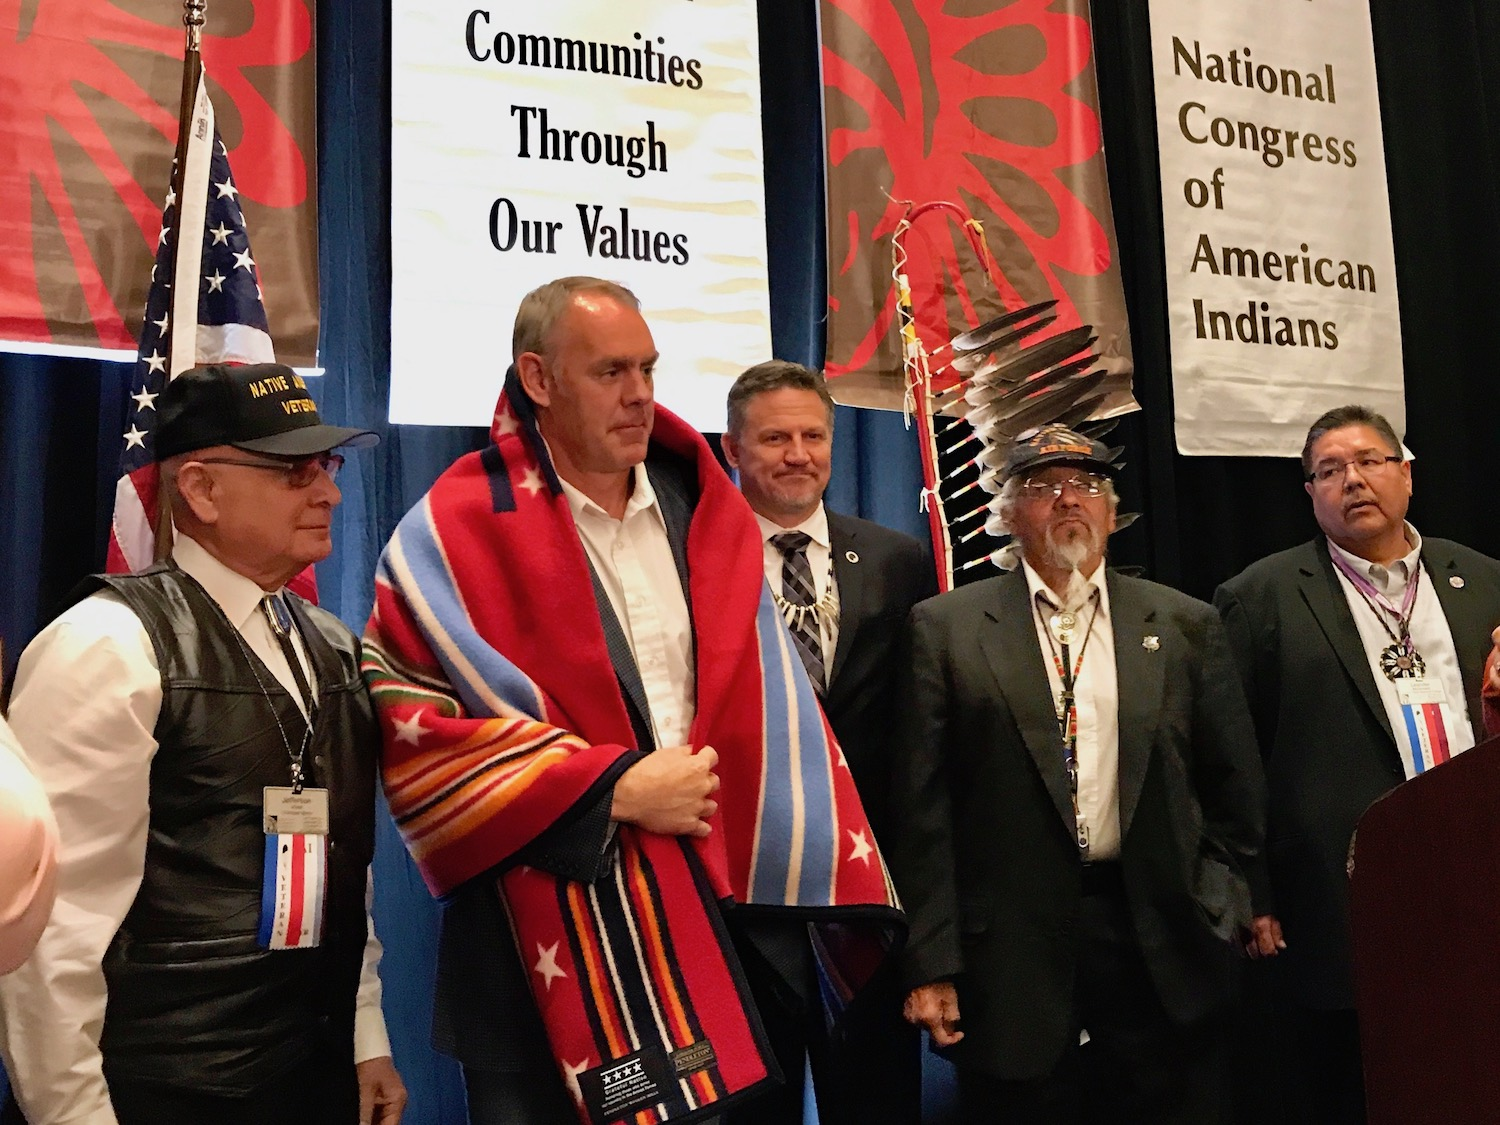 News reports link Secretary Zinke's criminal woes to tribal gaming